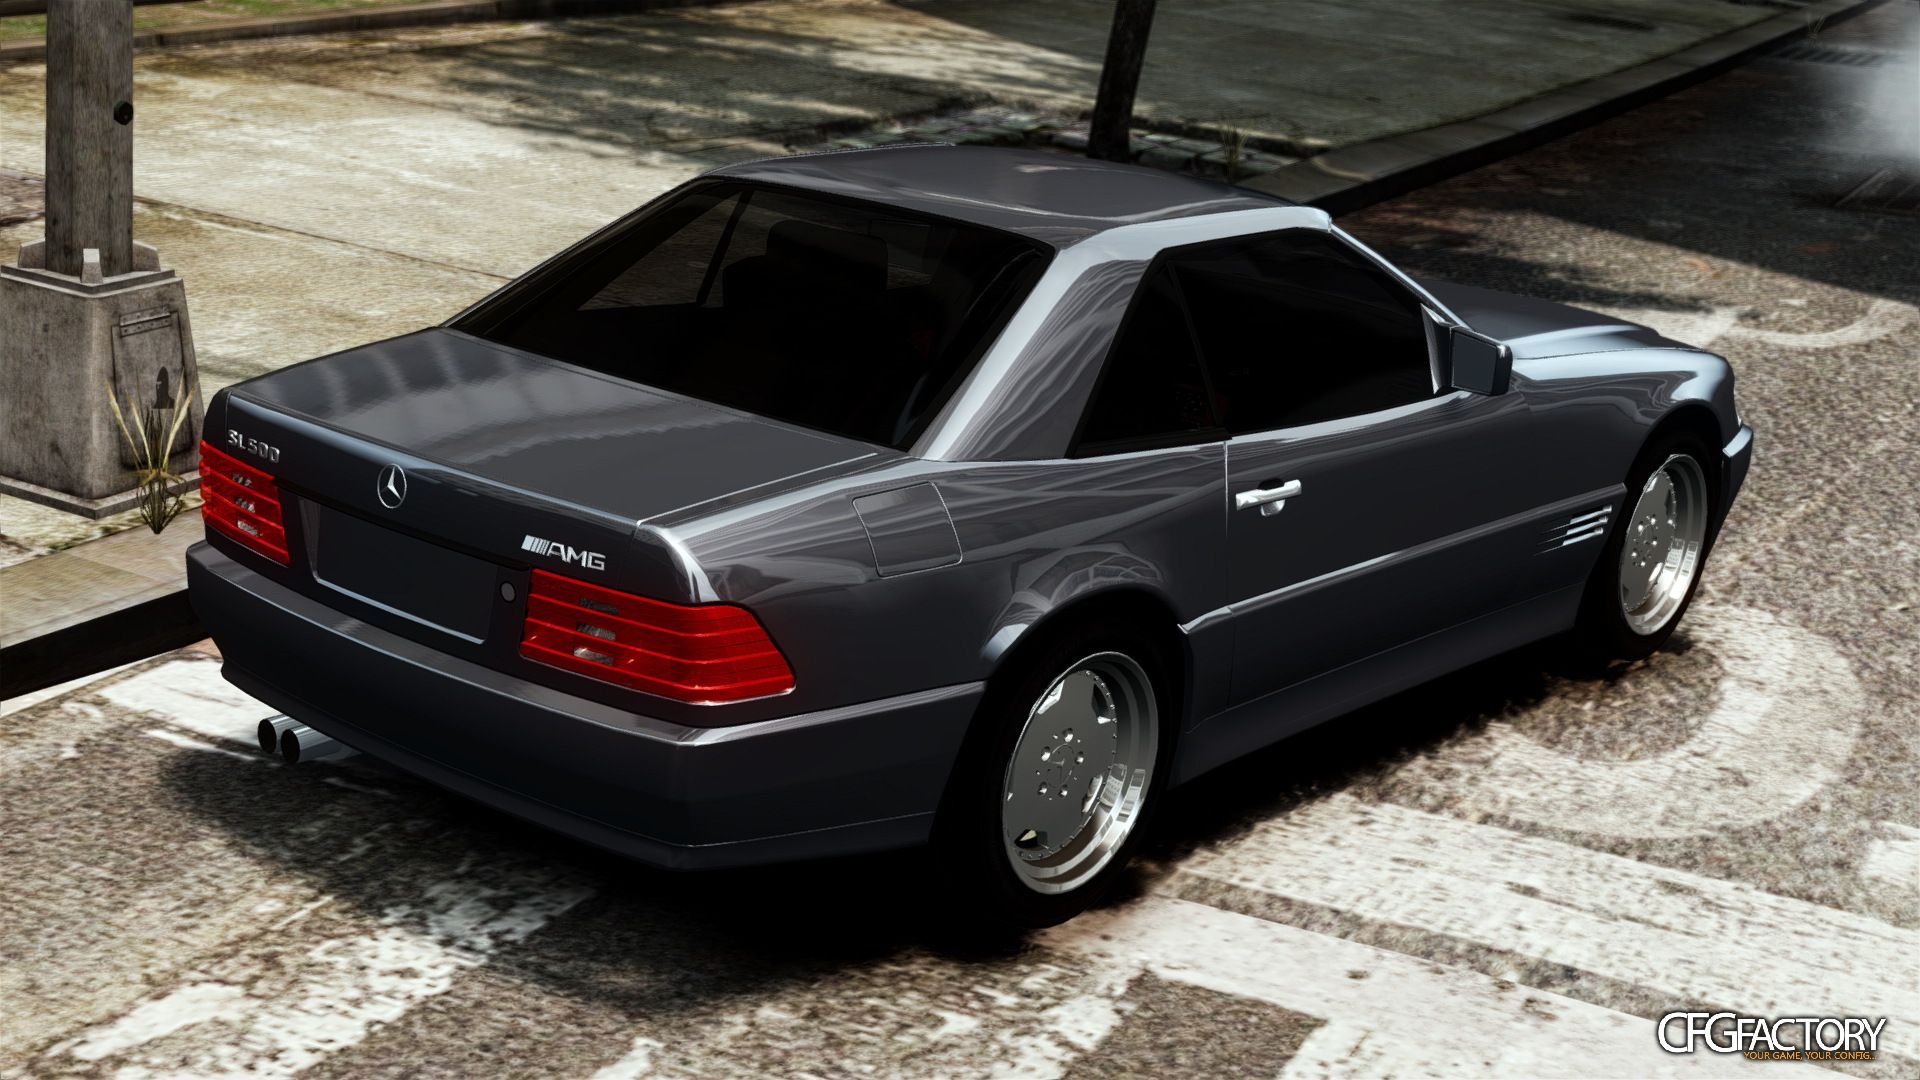 1995 mercedes benz sl 500 amg download cfgfactory. Black Bedroom Furniture Sets. Home Design Ideas